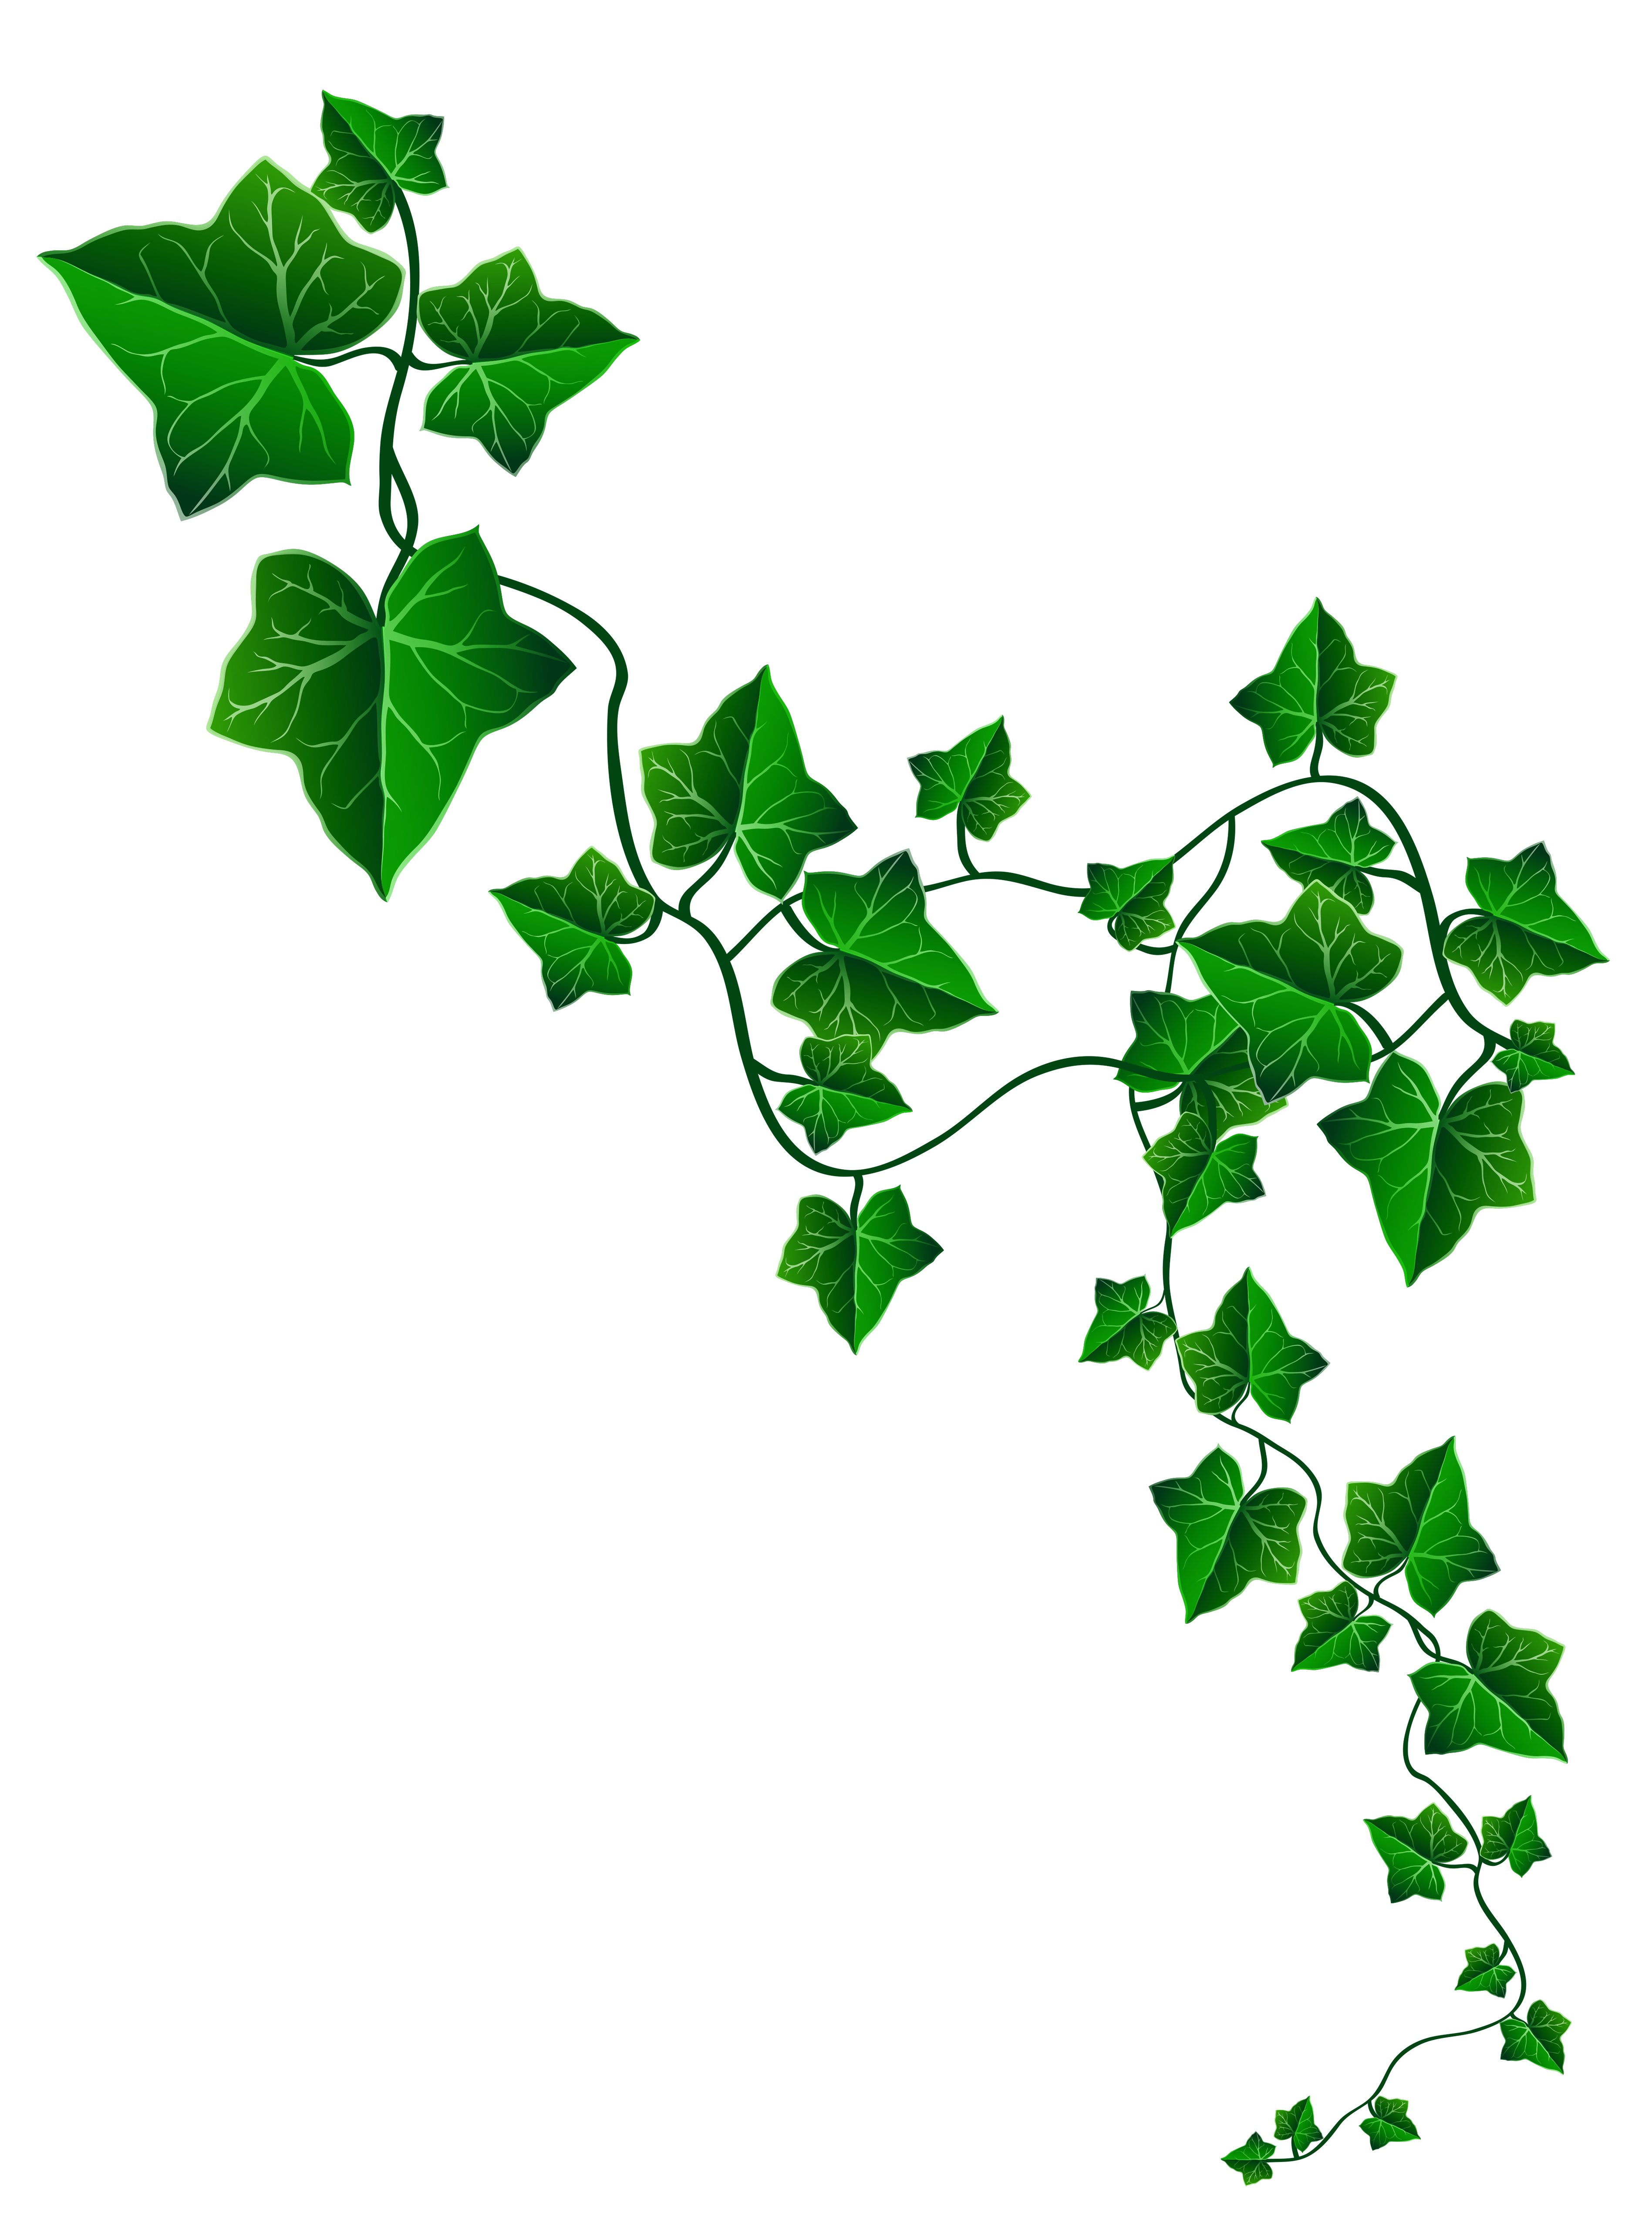 Tree vine clipart black and white Vine Ivy Decoration PNG Clipart Image | Gallery Yopriceville - High ... black and white